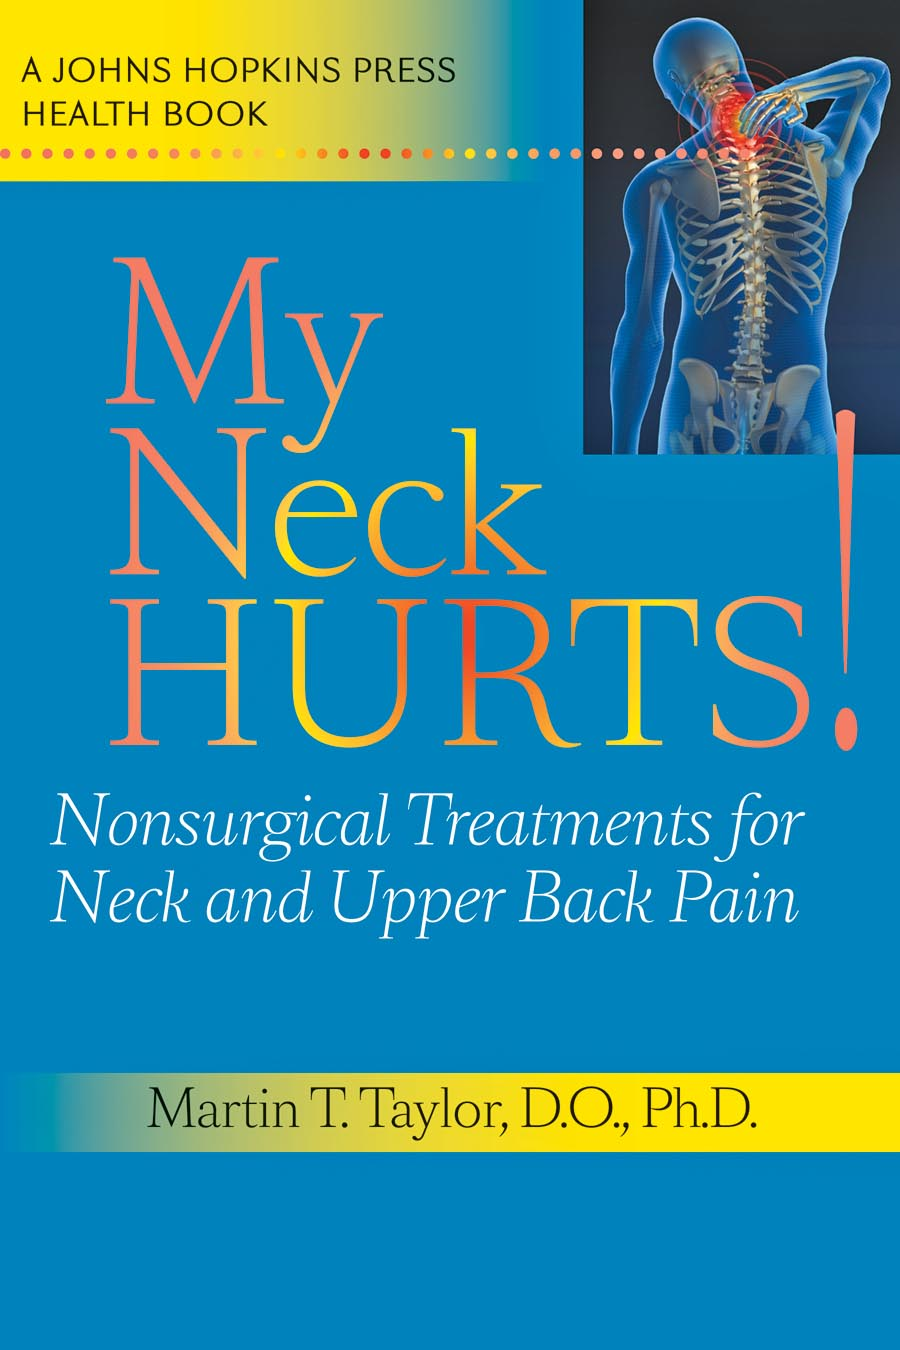 My Neck Hurts! – Nonsurgical Treatments for Neck and Upper Back Pain hurts hurts surrender